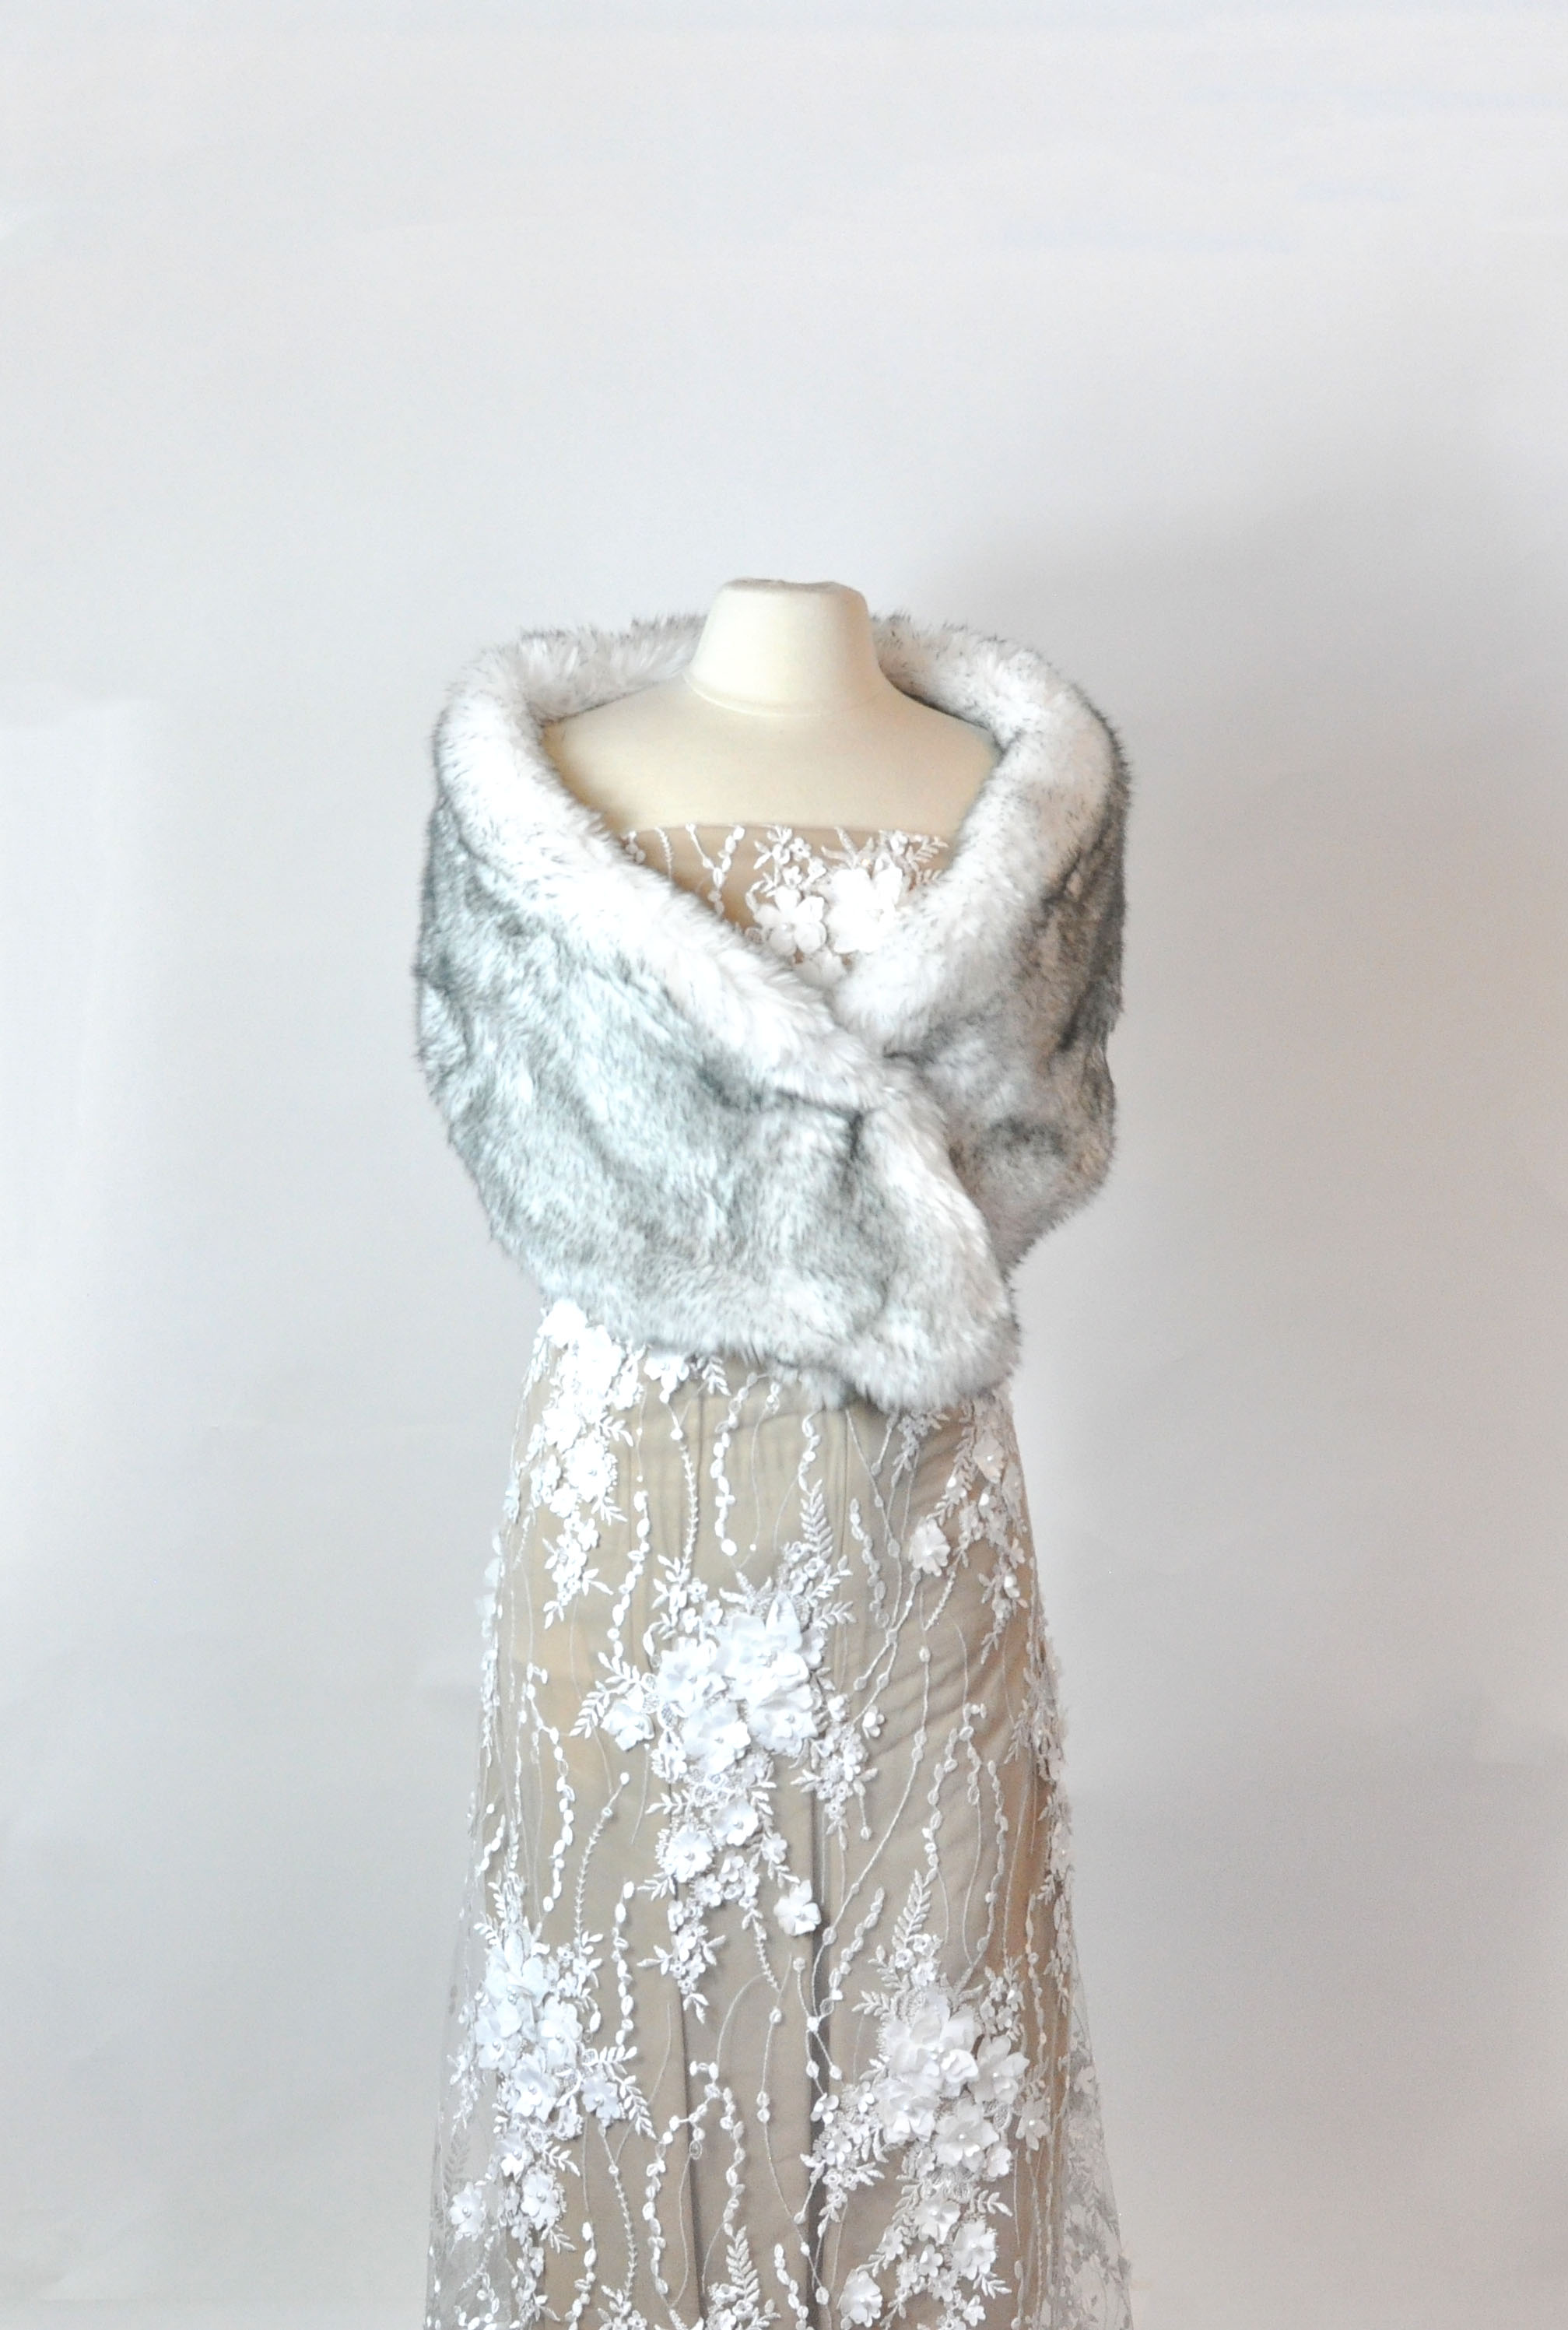 DIY faux fur stole. Takes less than an hour and looks beautiful for winter weddings of vintage ensembles. #diyfashion